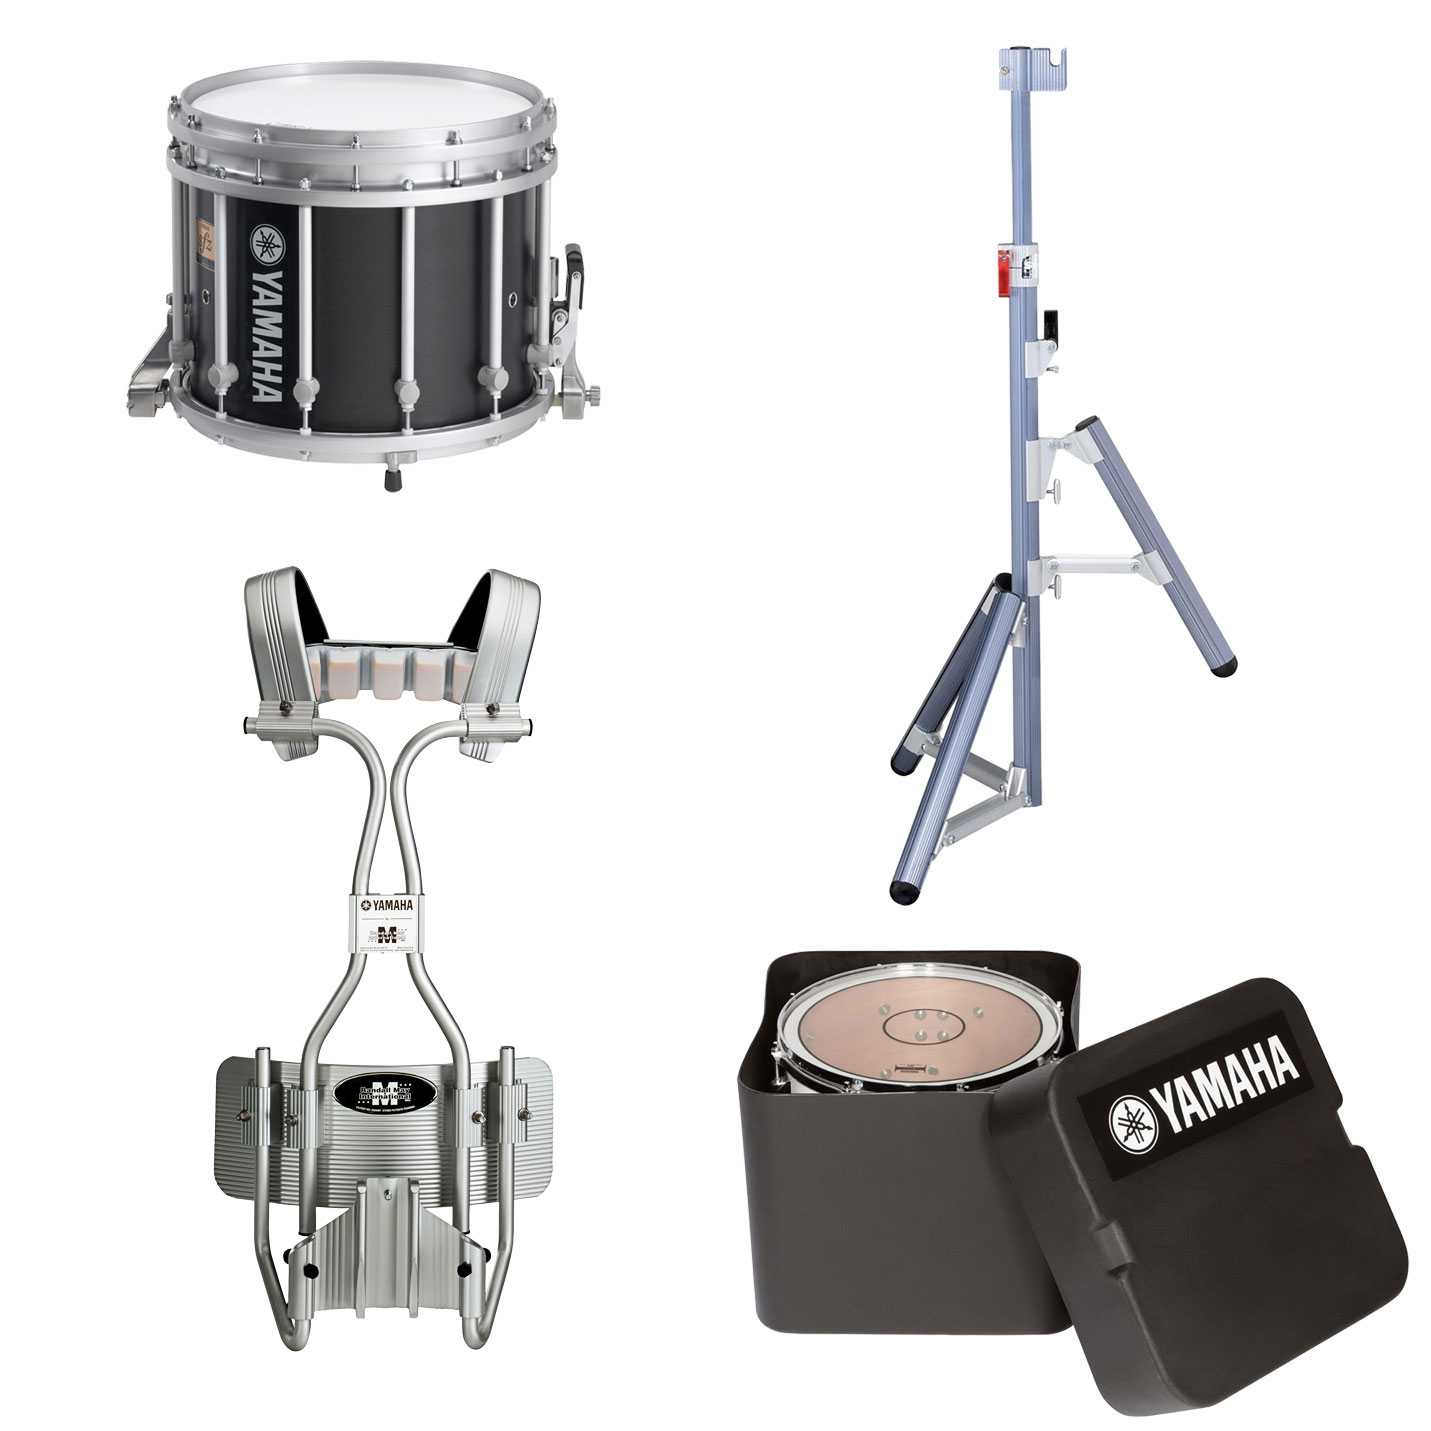 "Yamaha 13"" (Diameter) x 11"" (Deep) 9300 SFZ Marching Snare Drum with Tube Carrier, Case, and Stand"